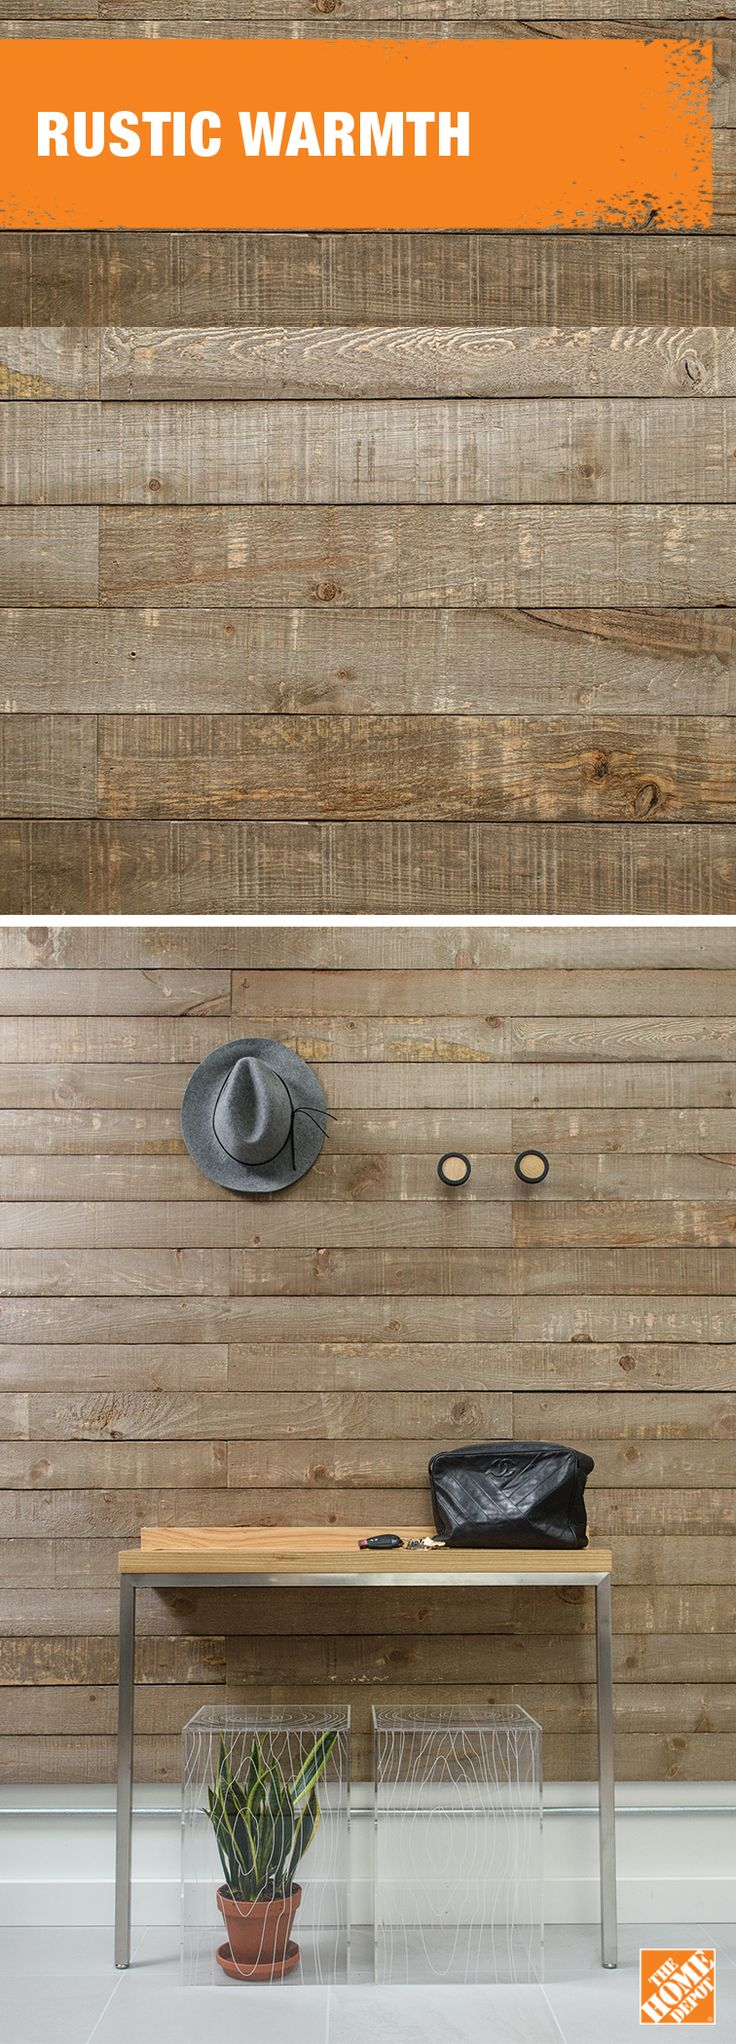 Naturally finished barn boards add a warm touch to cool tiles. Learn more at homedepot.ca.